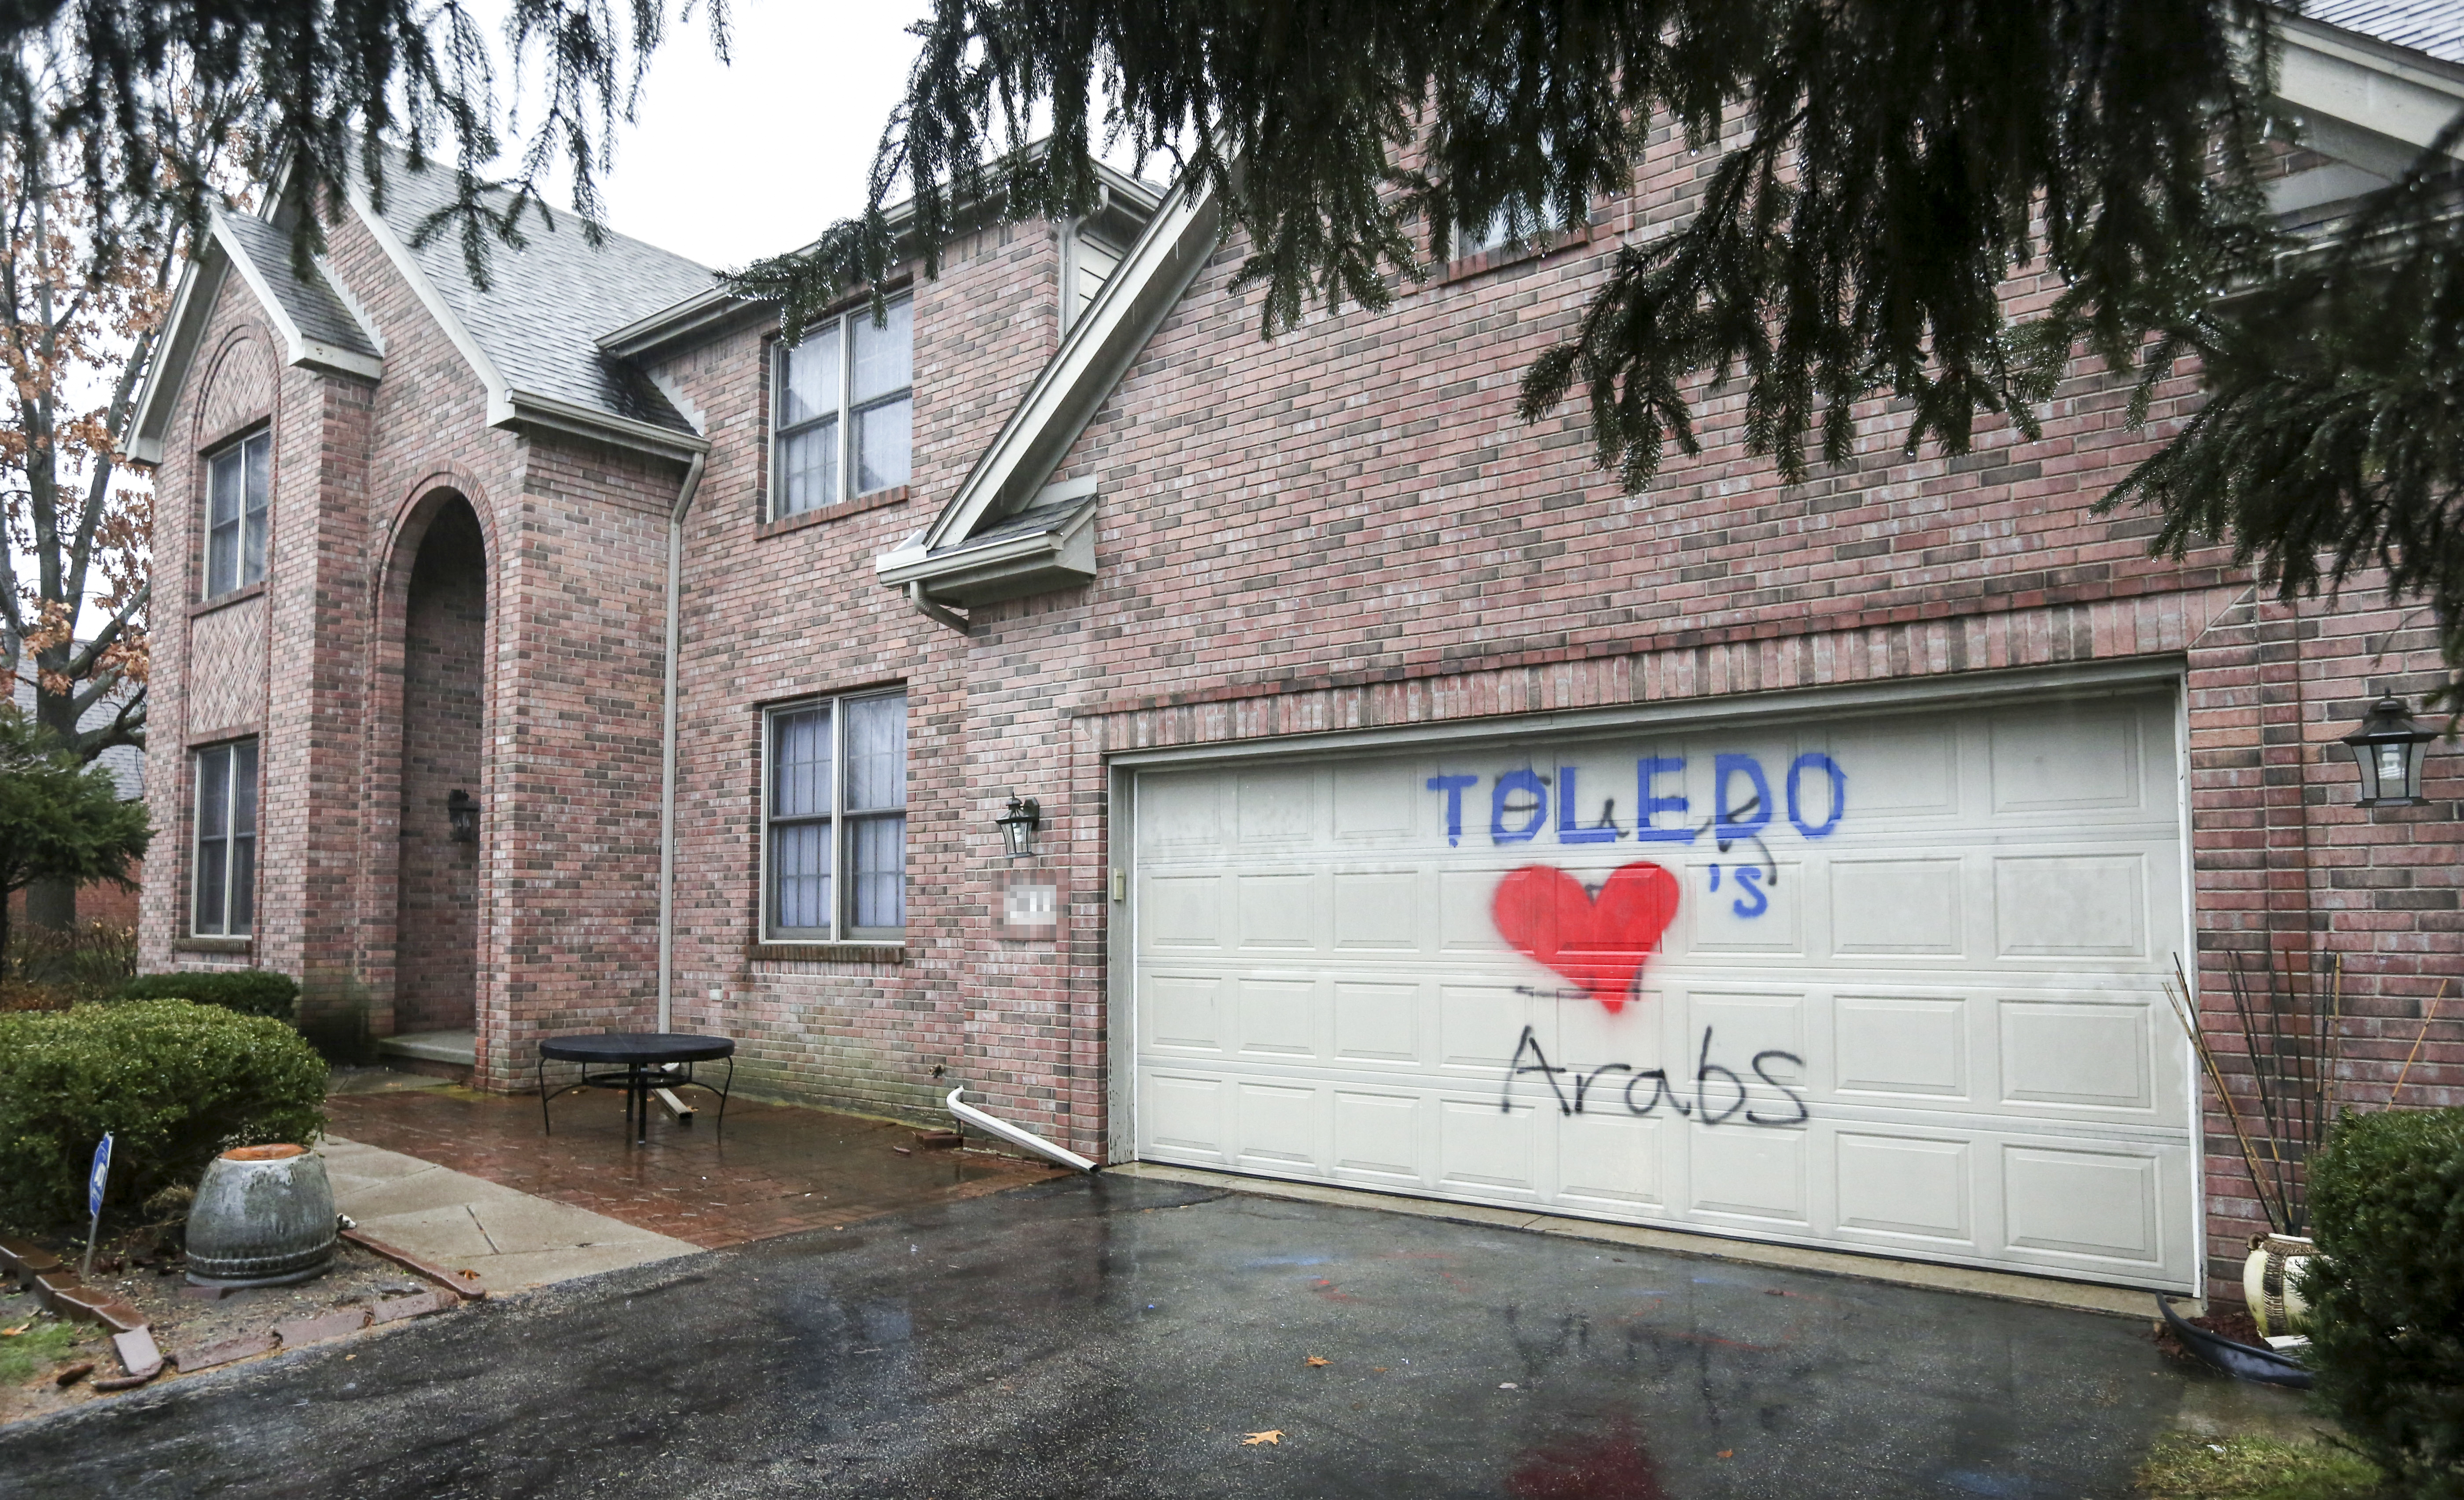 Hateful graffiti in Sylvania Township turned into message of love